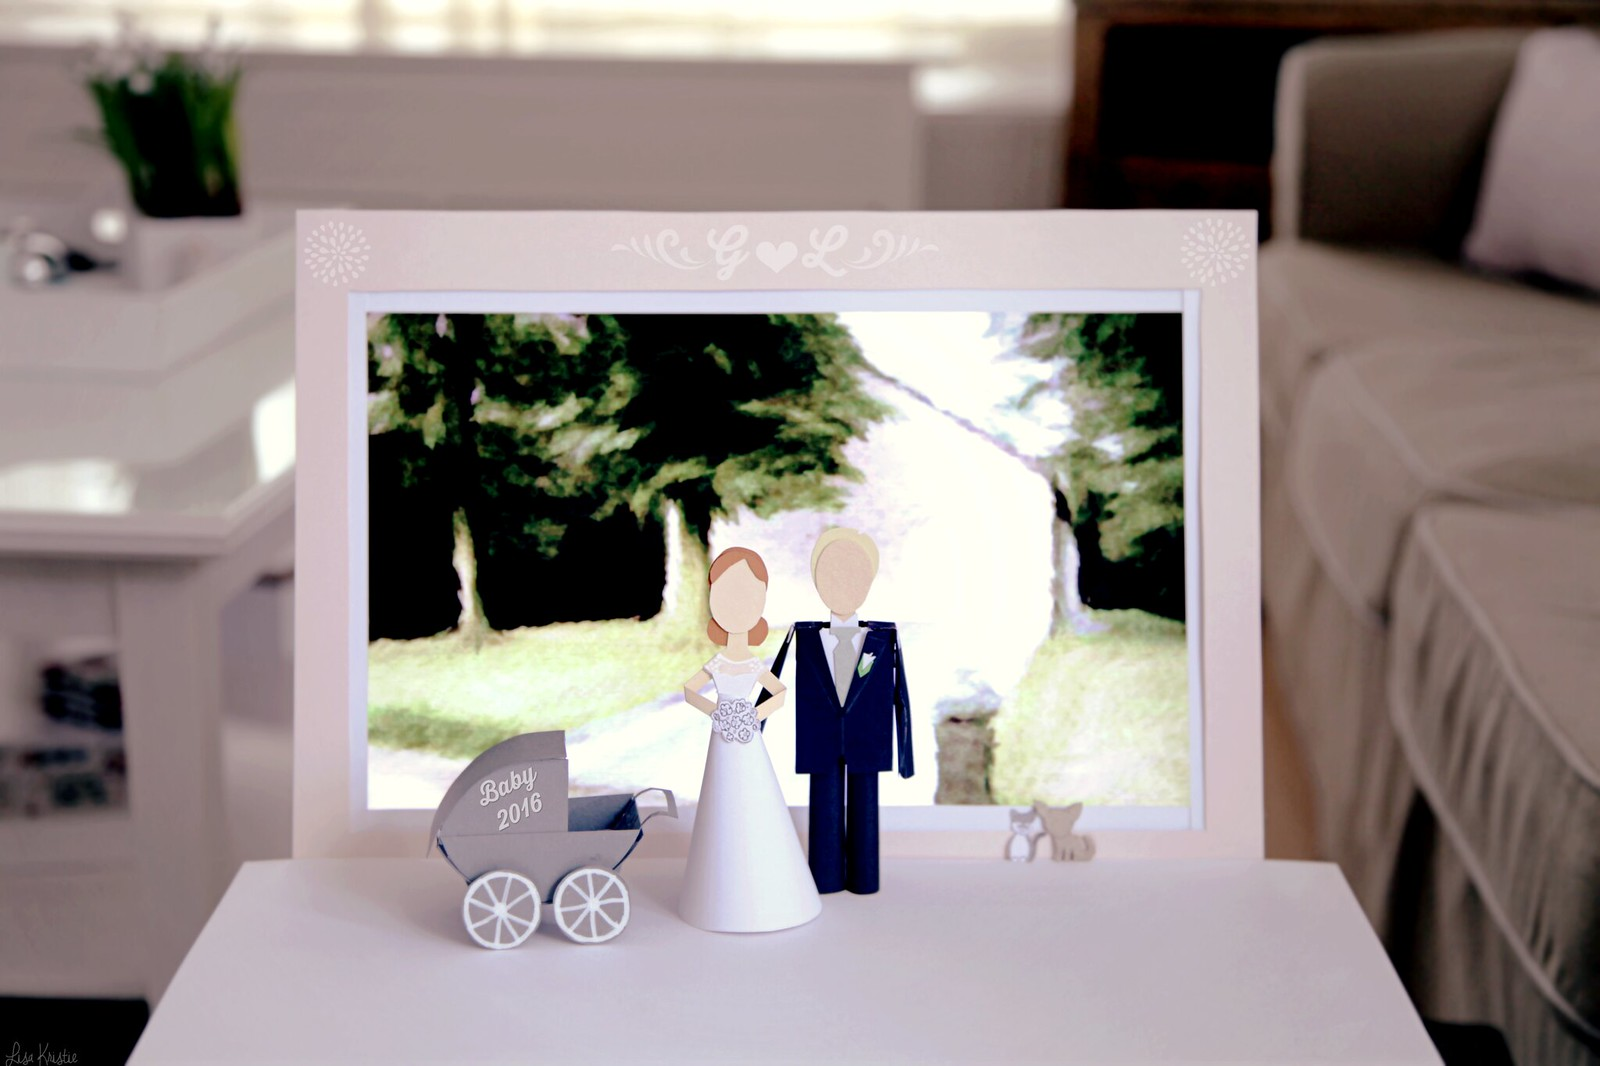 Baby 2016 pregnancy announcement paper figures couple wedding cake toppers pets home house painting background crib buggy cute pram